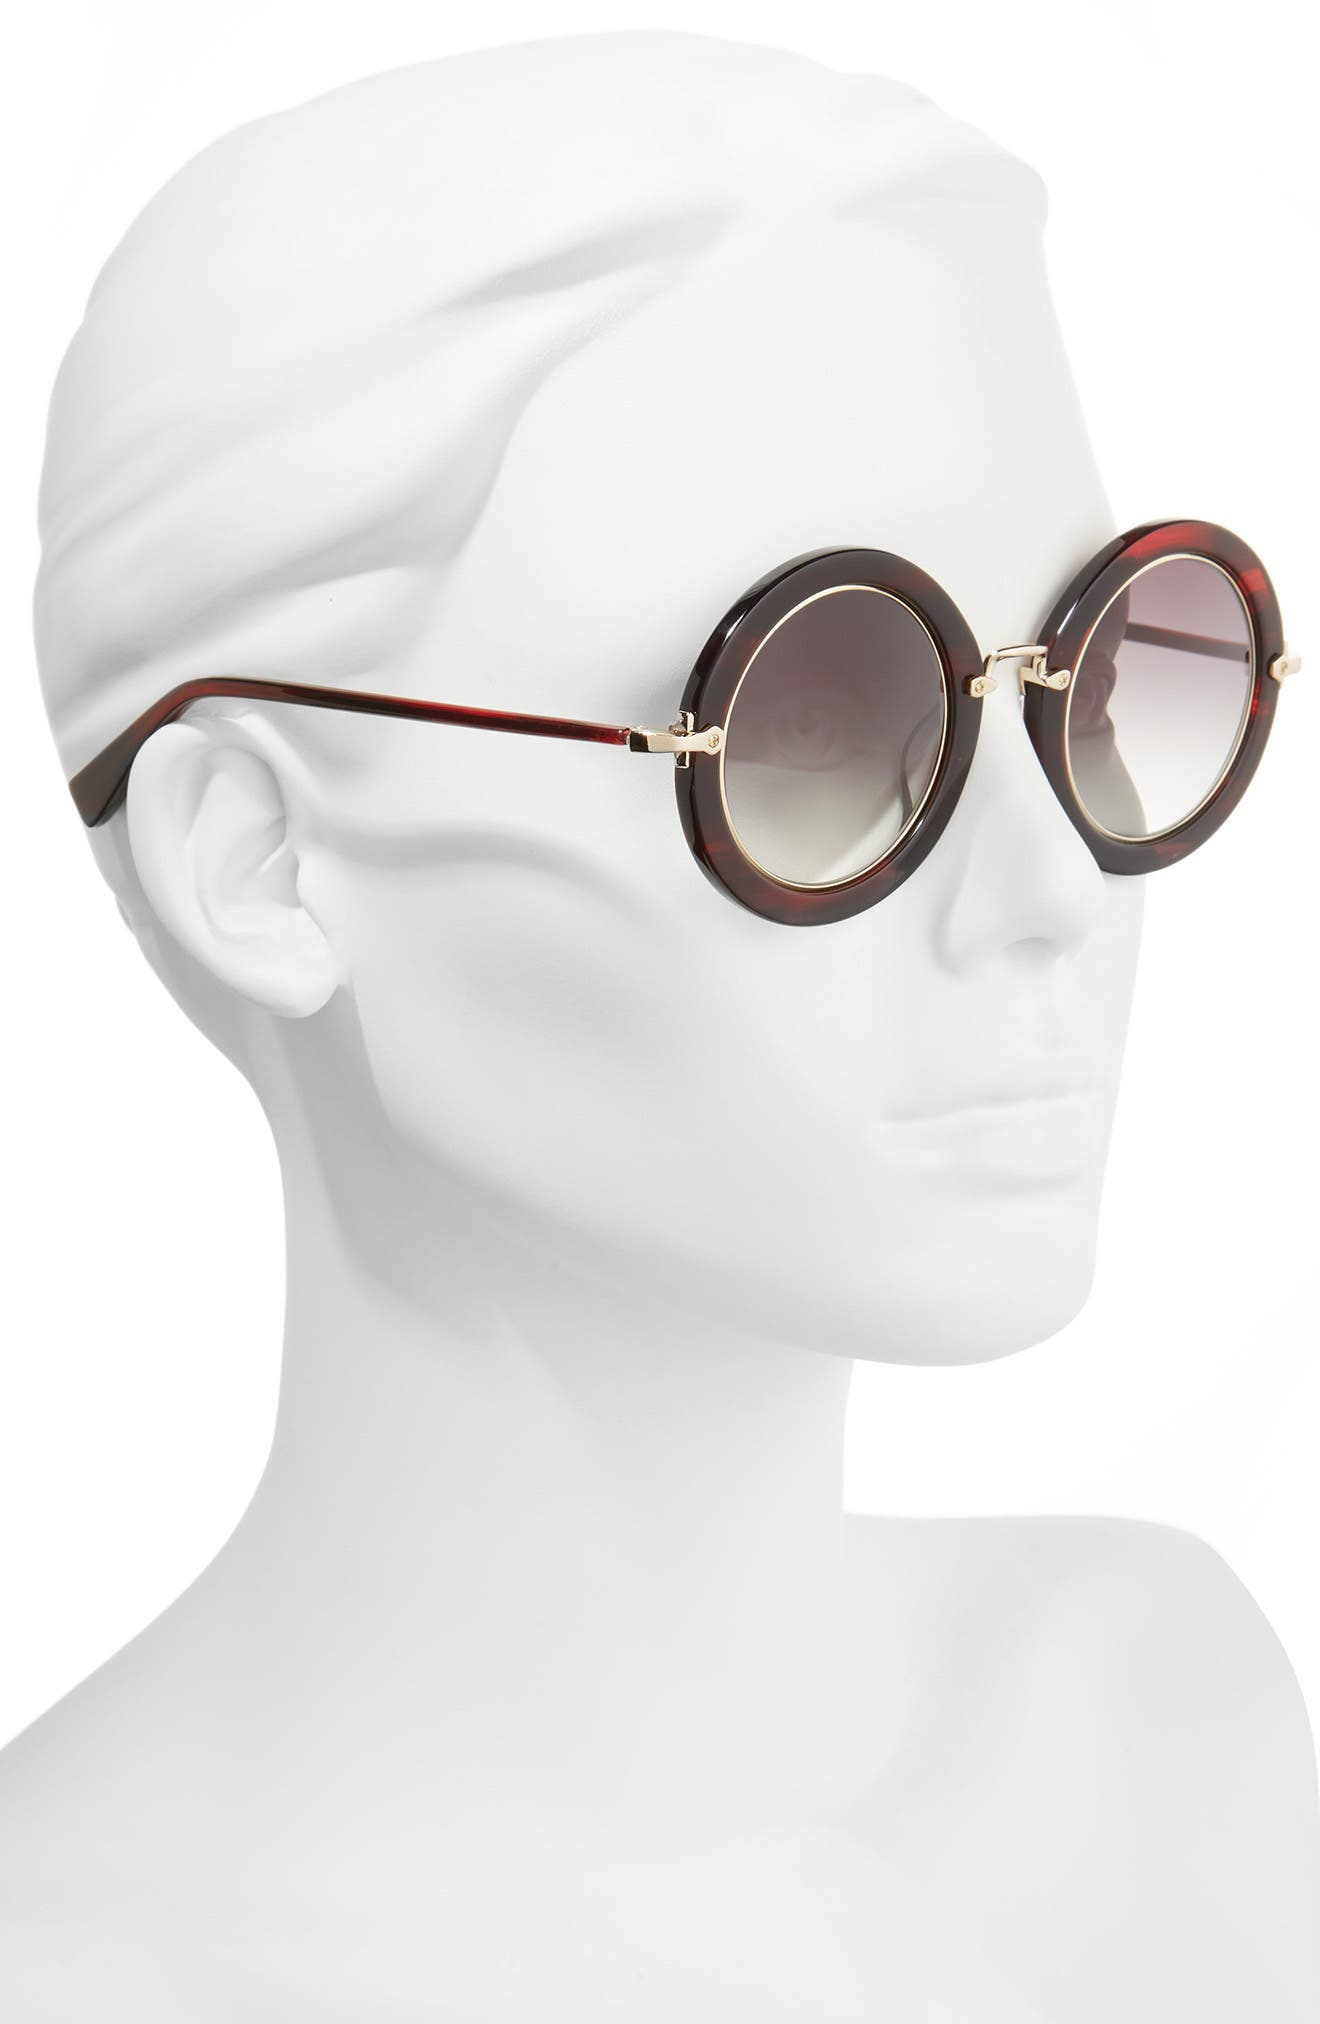 Madison 46mm Round Sunglasses,                             Alternate thumbnail 2, color,                             RED FEATHER